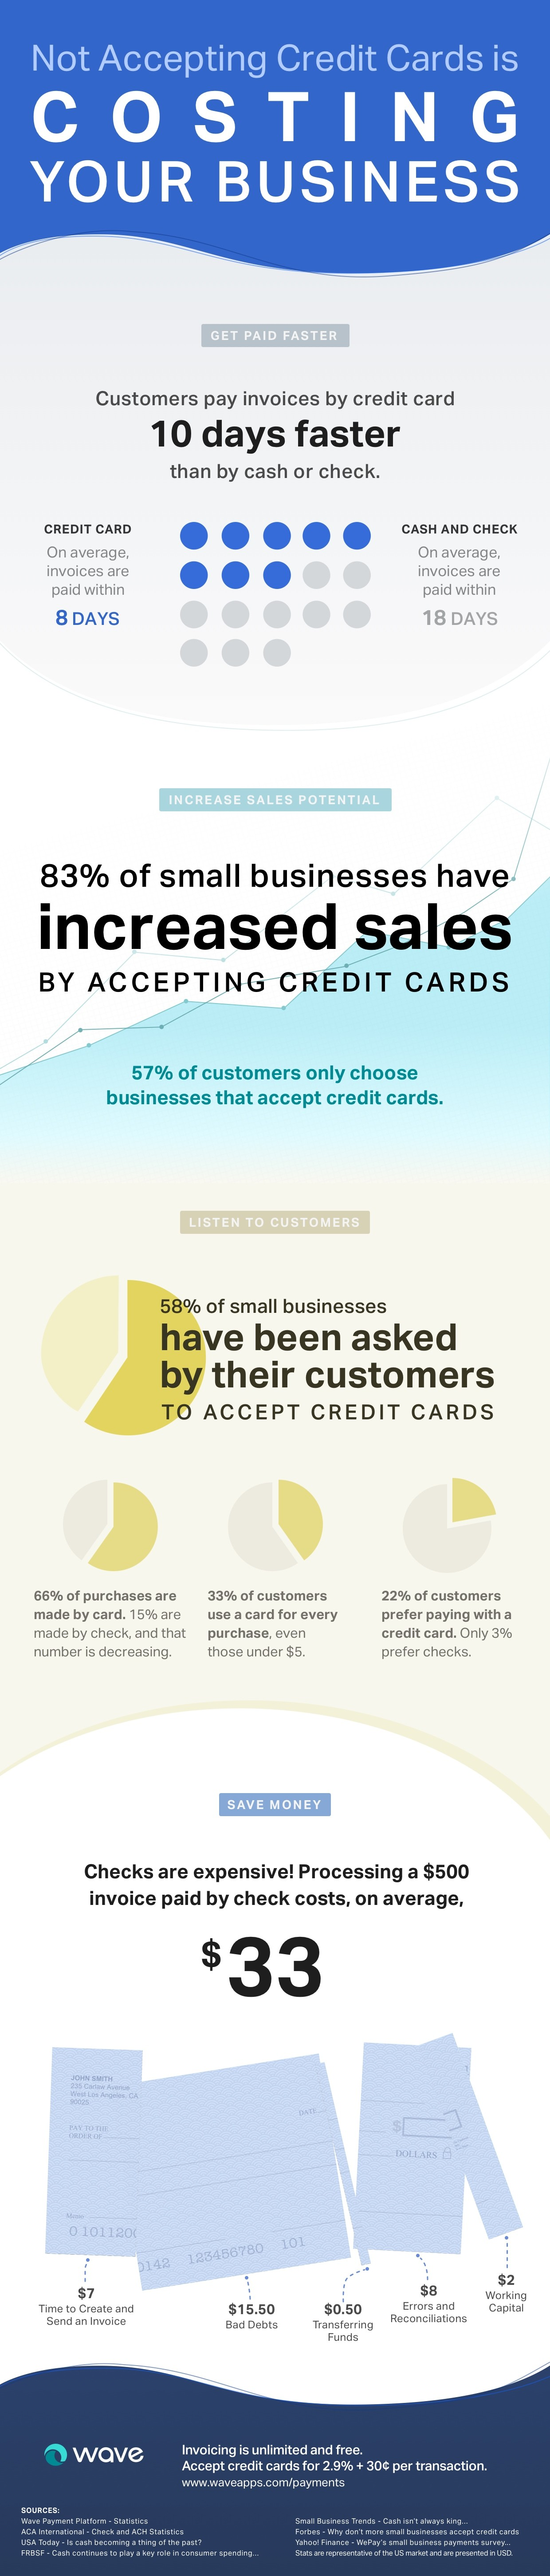 Infographic: how not accepting credit cards is costing your business